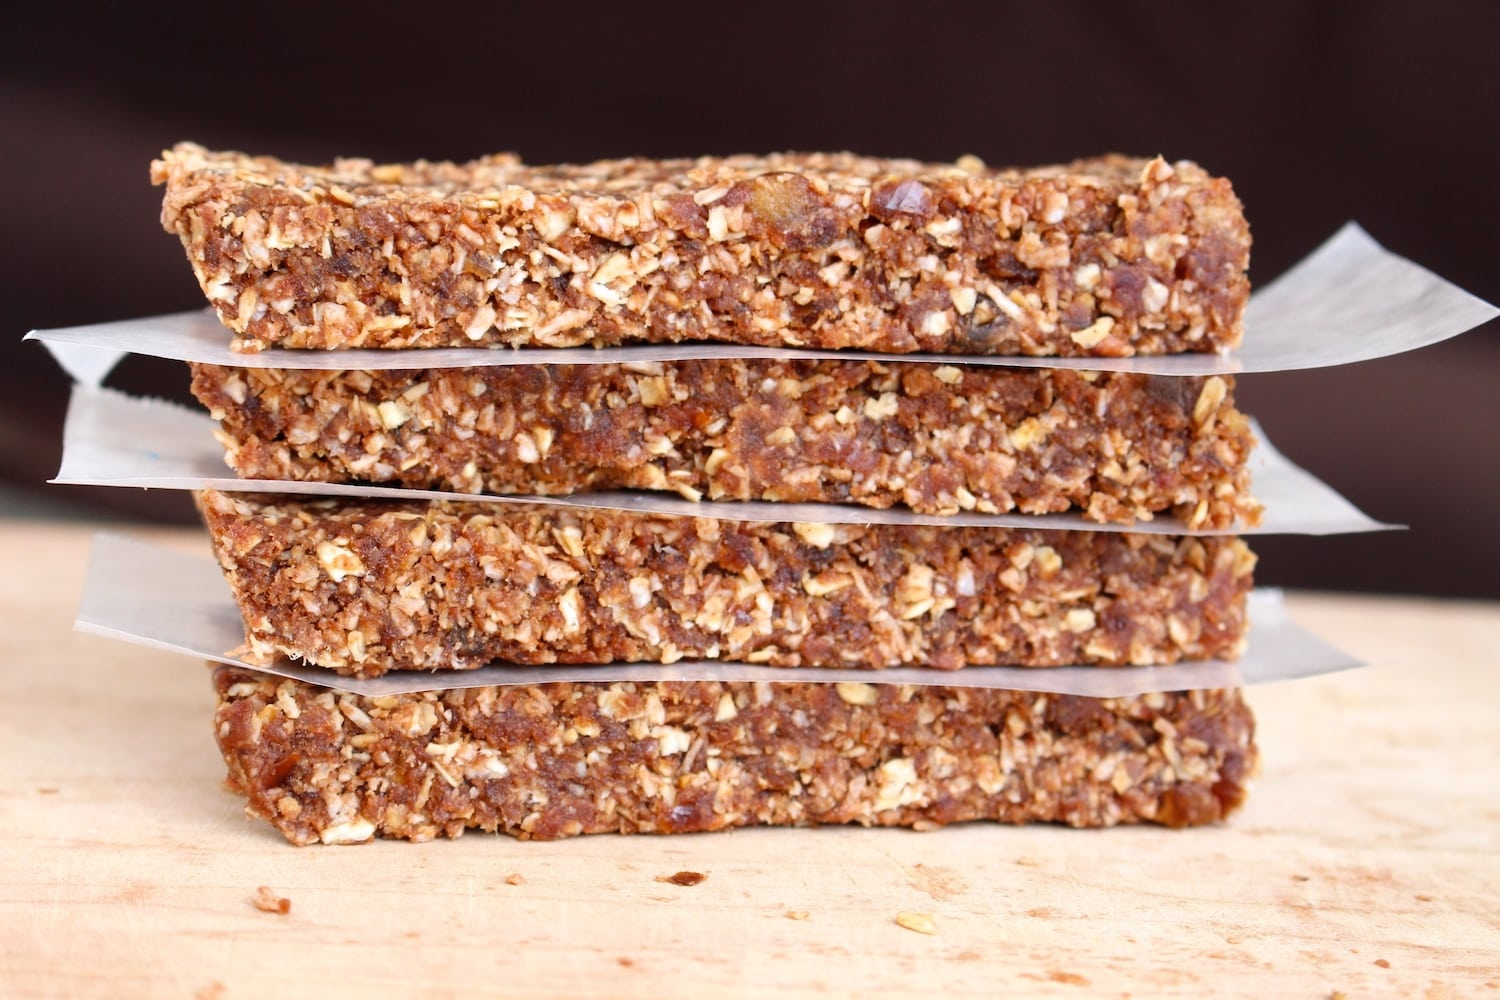 Easy homemade oatmeal date granola bars easy homemade oatmeal date granola bars separated by parchment paper ccuart Image collections